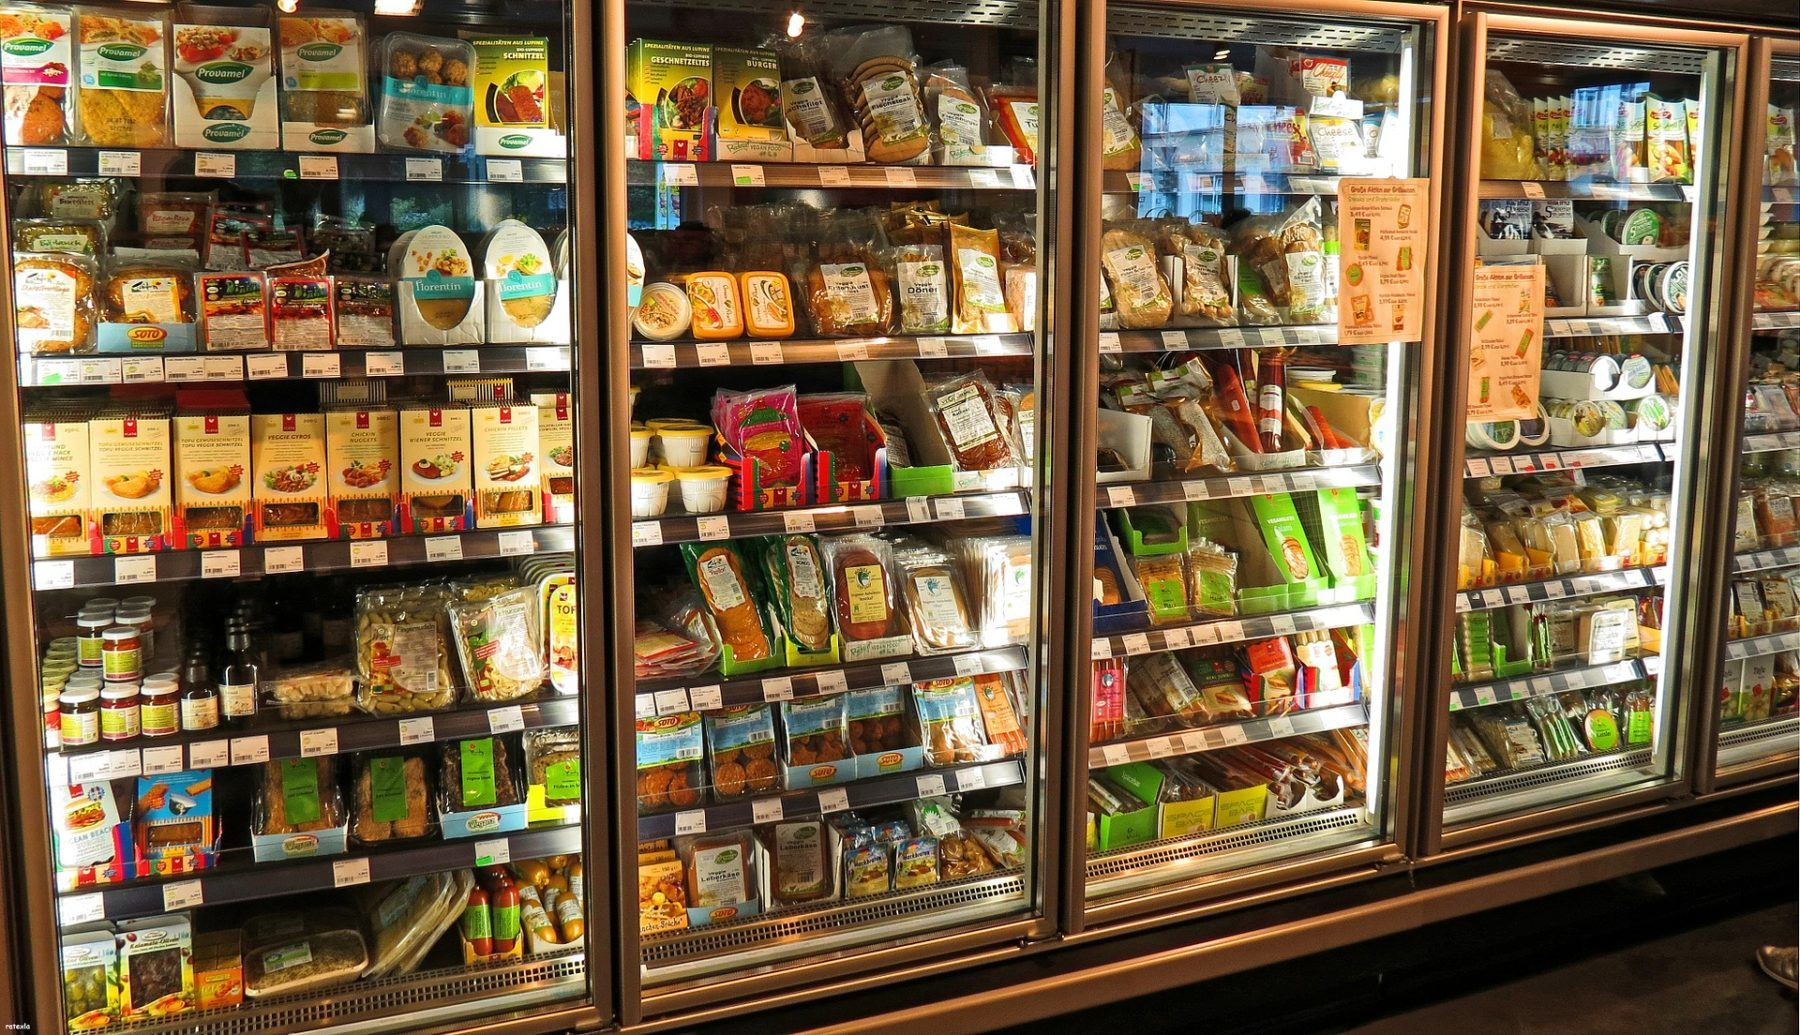 A retail refrigeration unit.